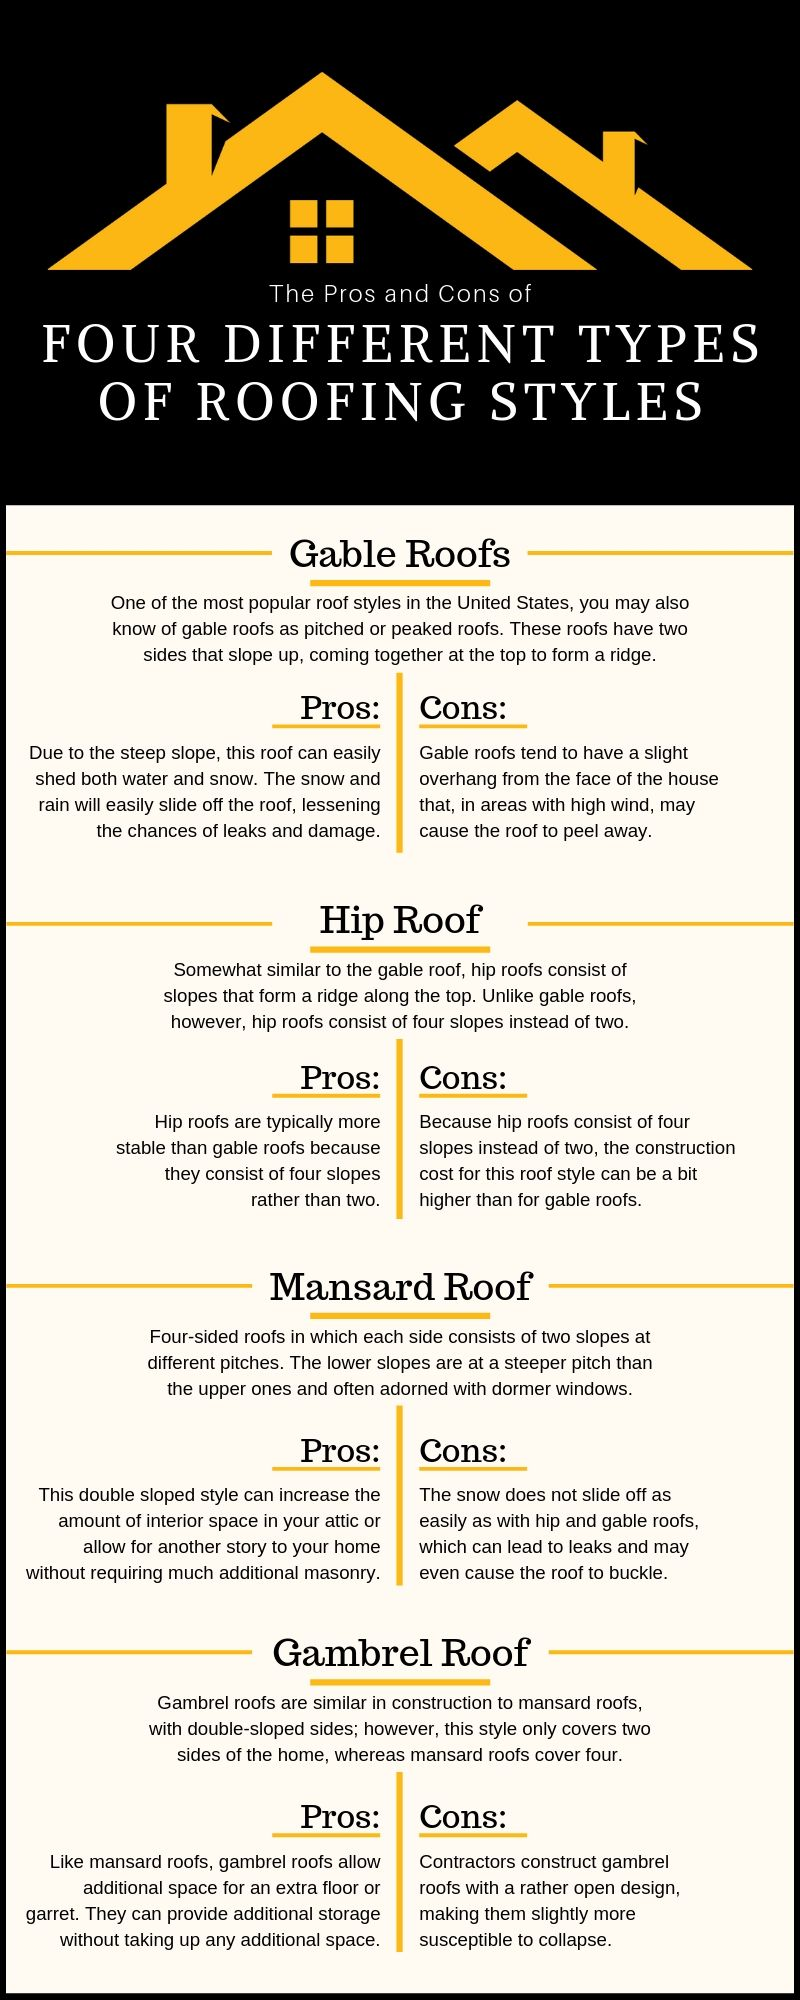 Four Different Types of Roofing Styles